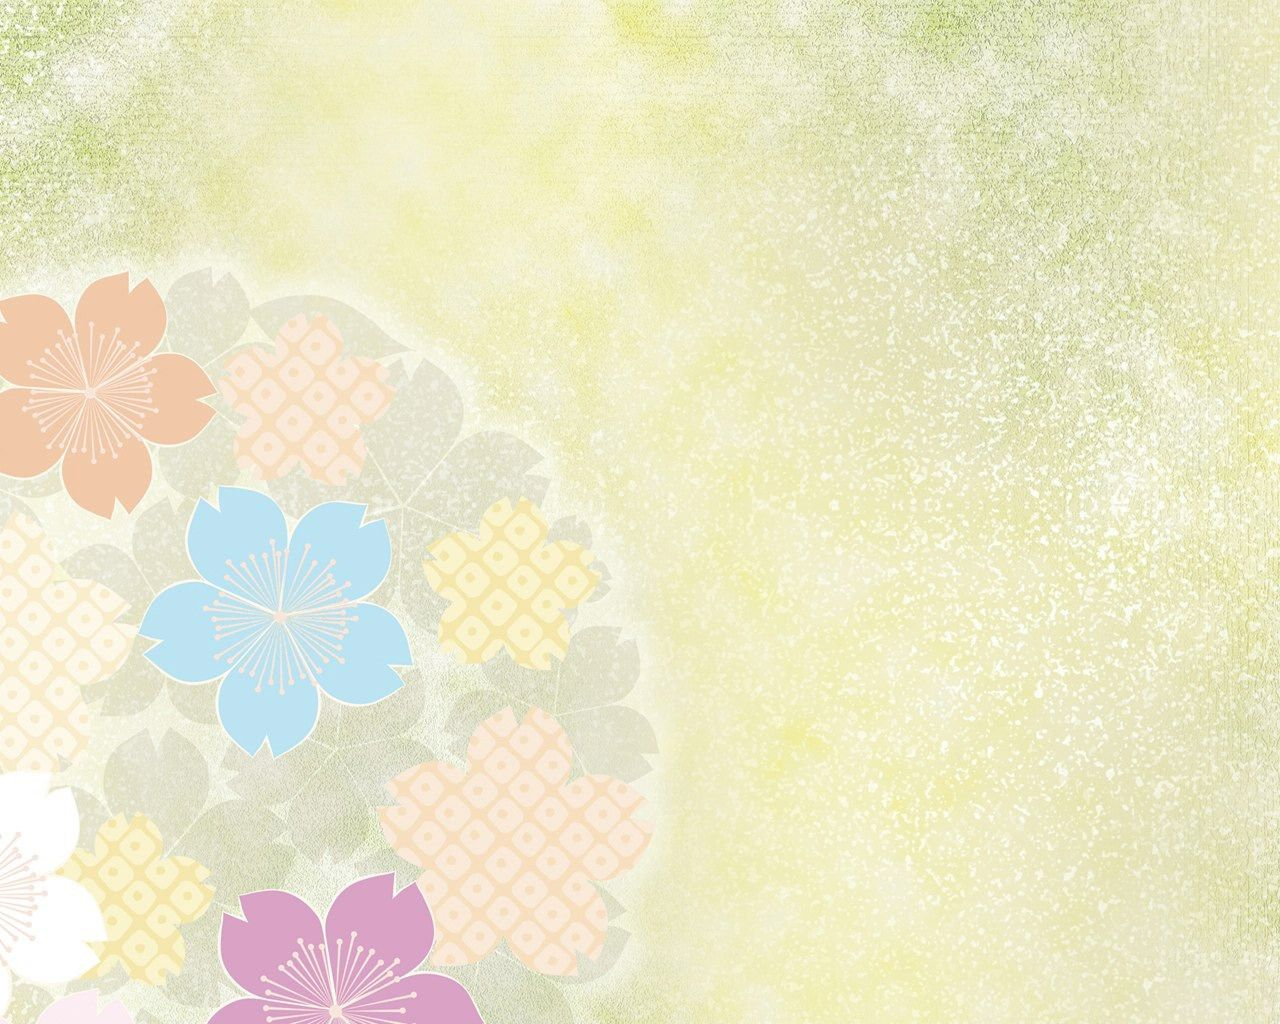 Background clipart #9